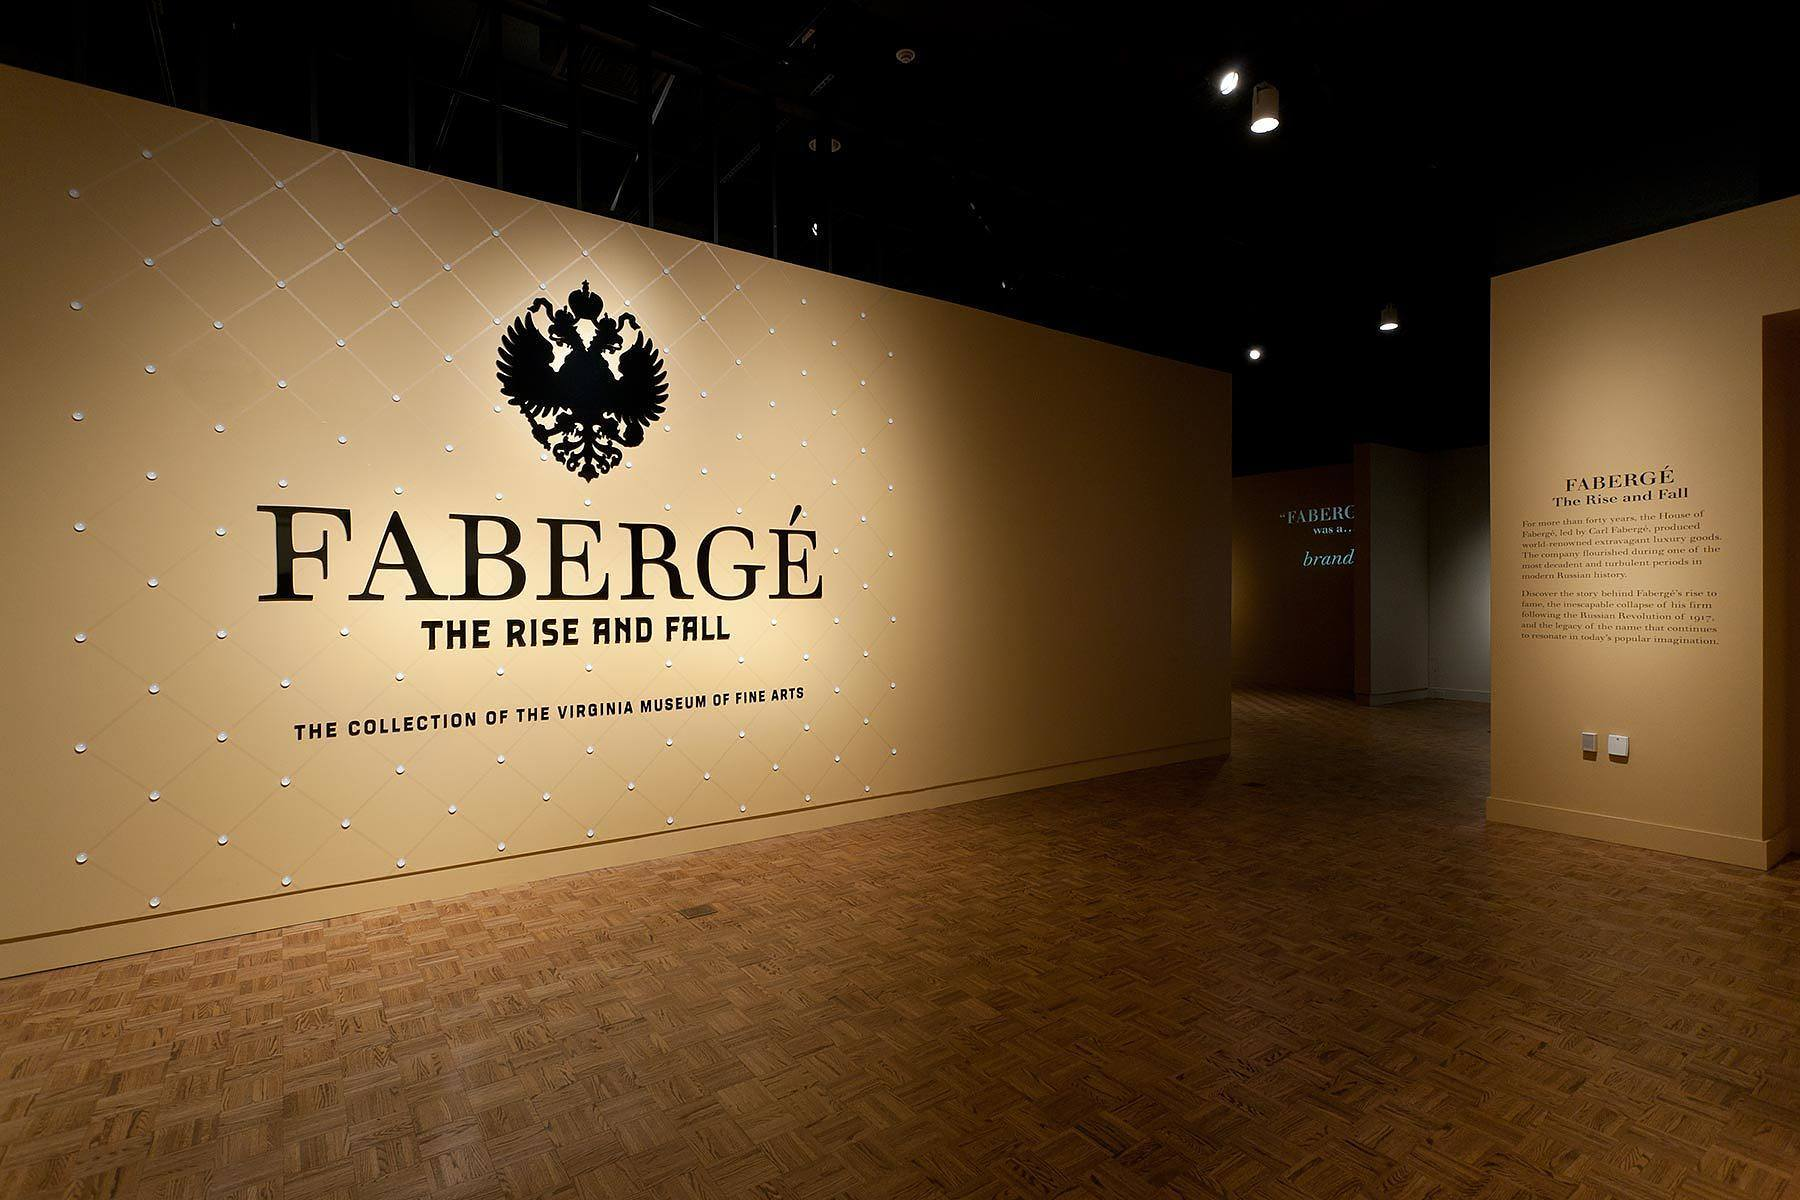 Exhibit graphics in the spirit of Faberge